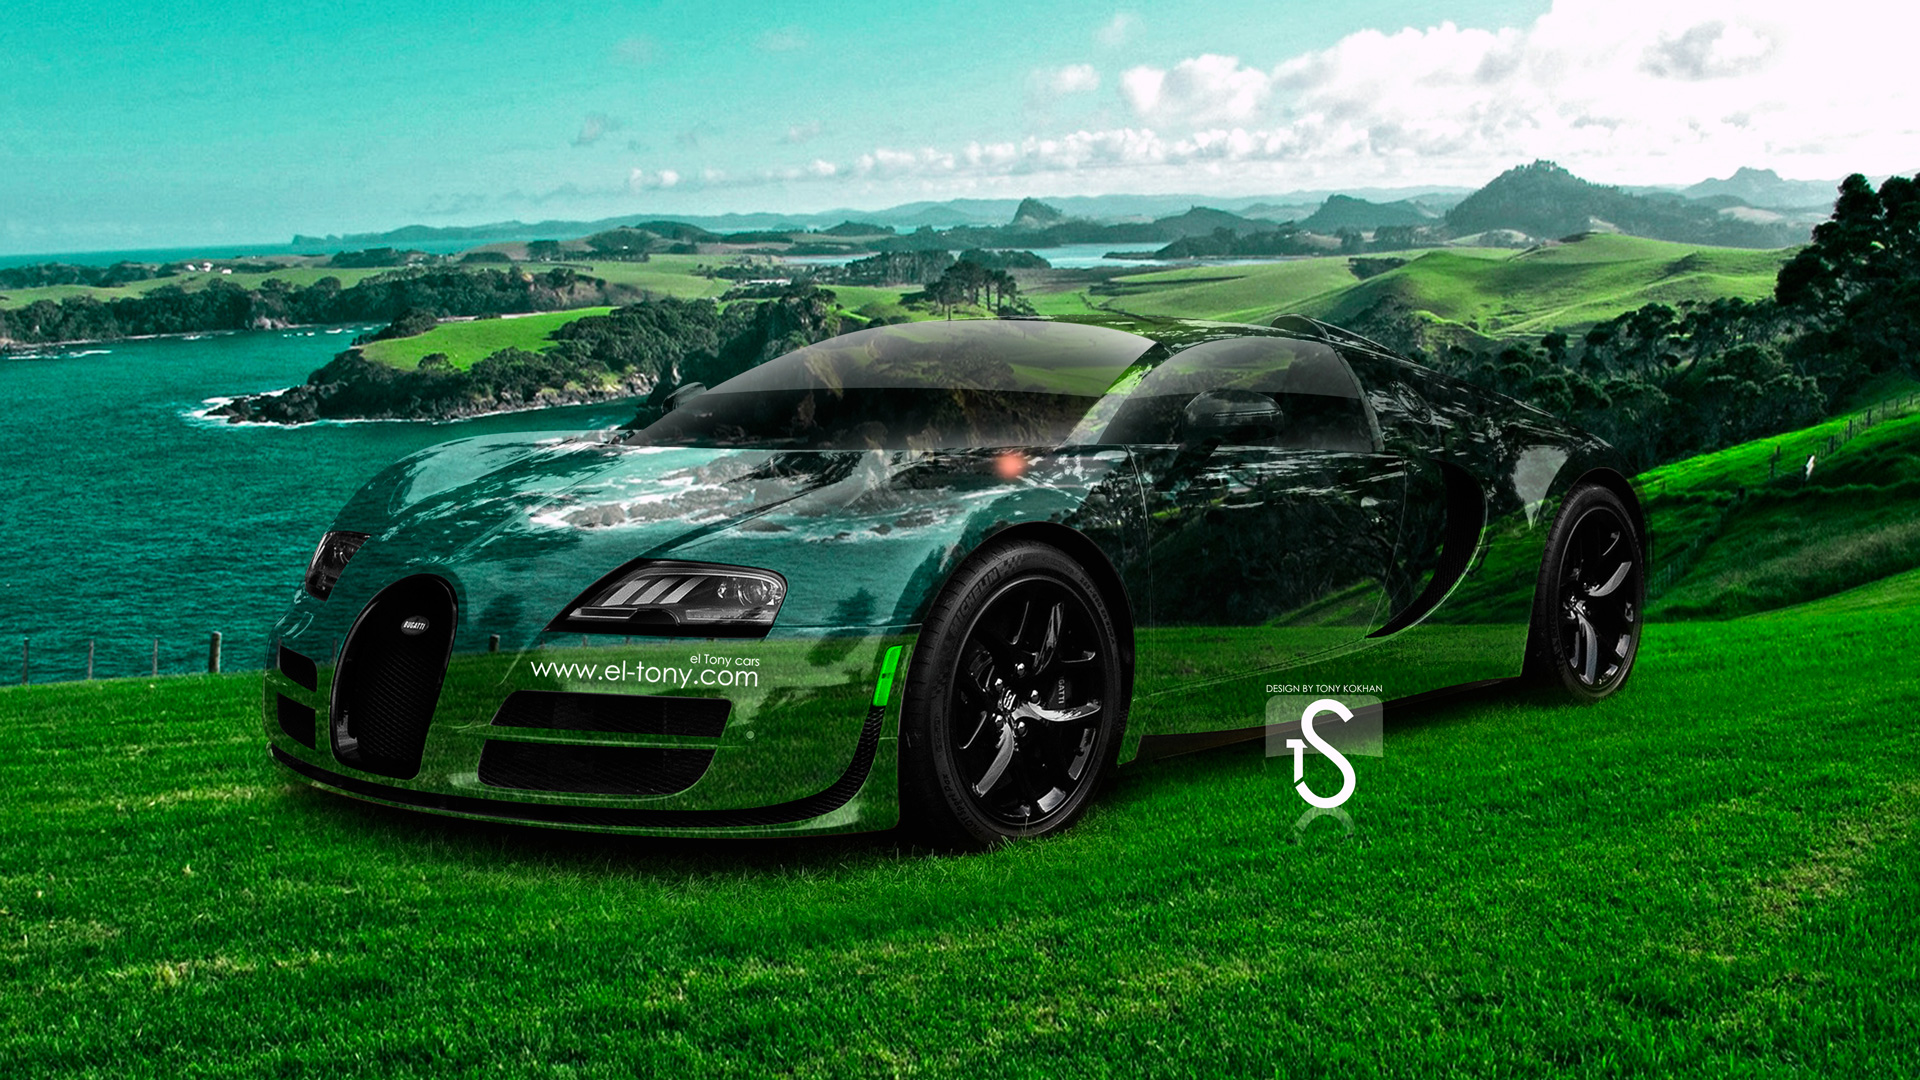 Bugatti Veyron Crystal Nature Sea Car 2014